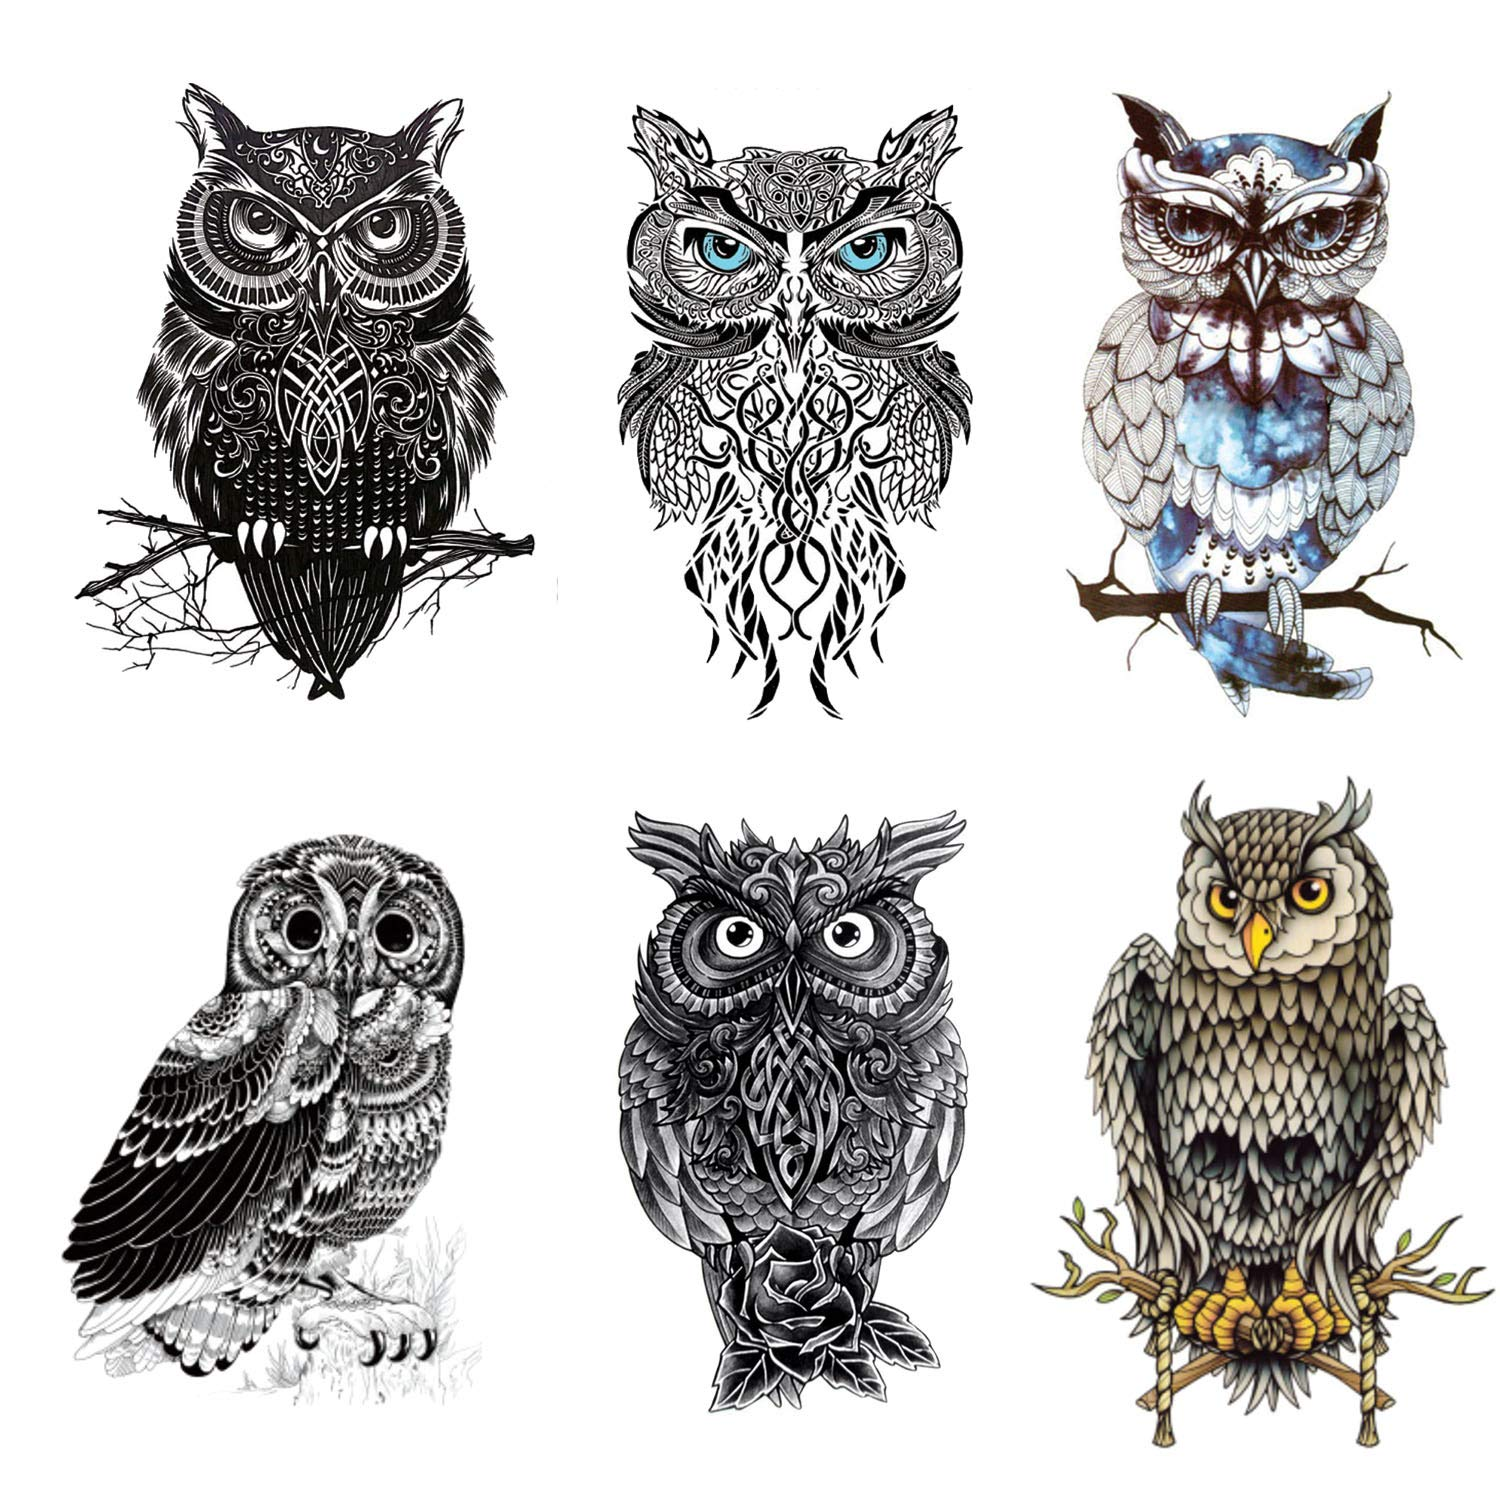 5514ef5d7 Amazon.com : Owl Temporary Tattoos Large Temporary Tattoo Half Arm Tattoo  Sleeves Stickers Shoulder Body Art for Men Women Teens-6 Sheets : Beauty